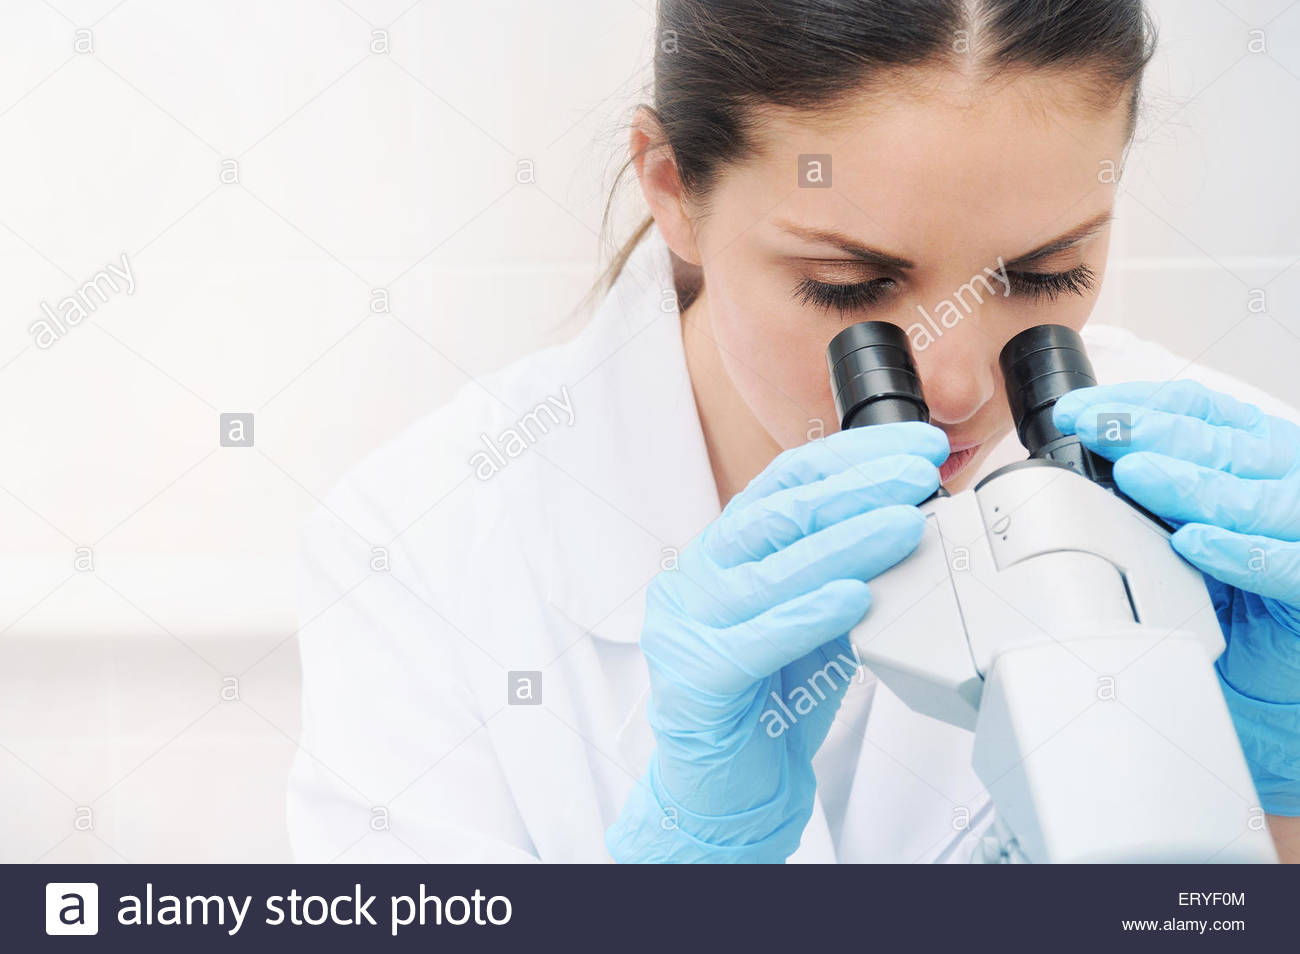 young woman medical researcher looking through microscope in laboratory, medicine concept - Stock Image